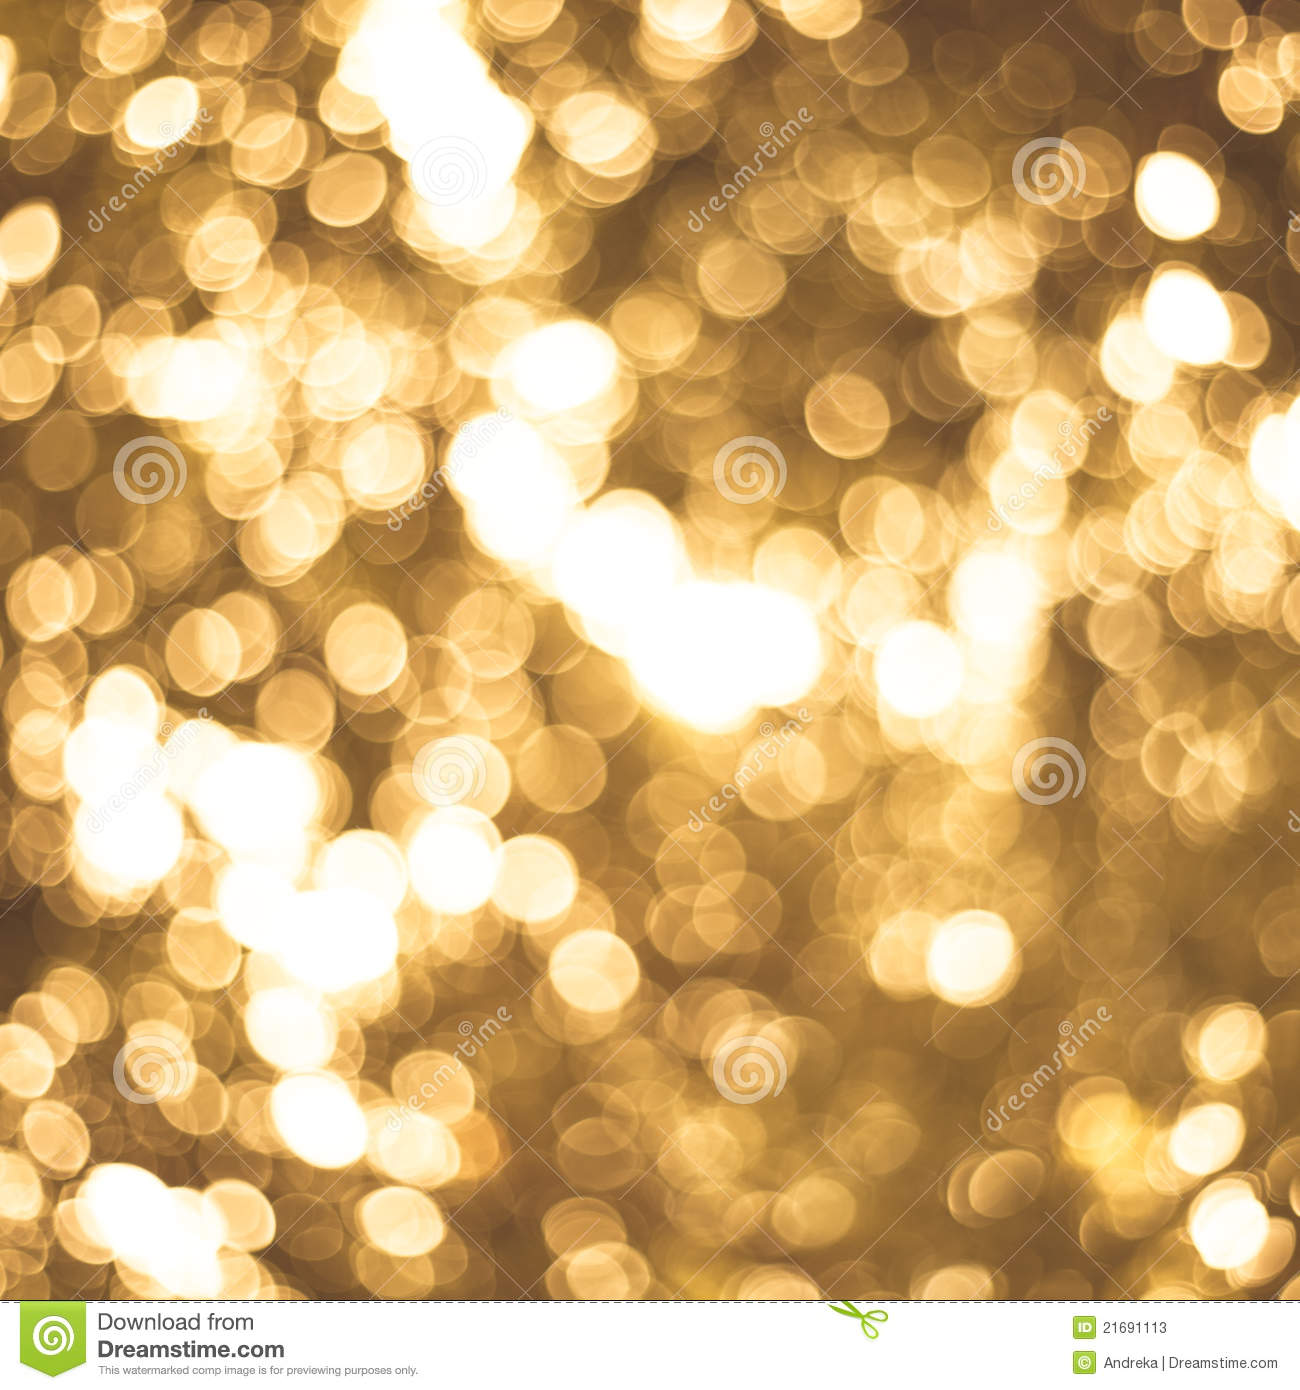 Gold Lights Backgrounds Gold lights